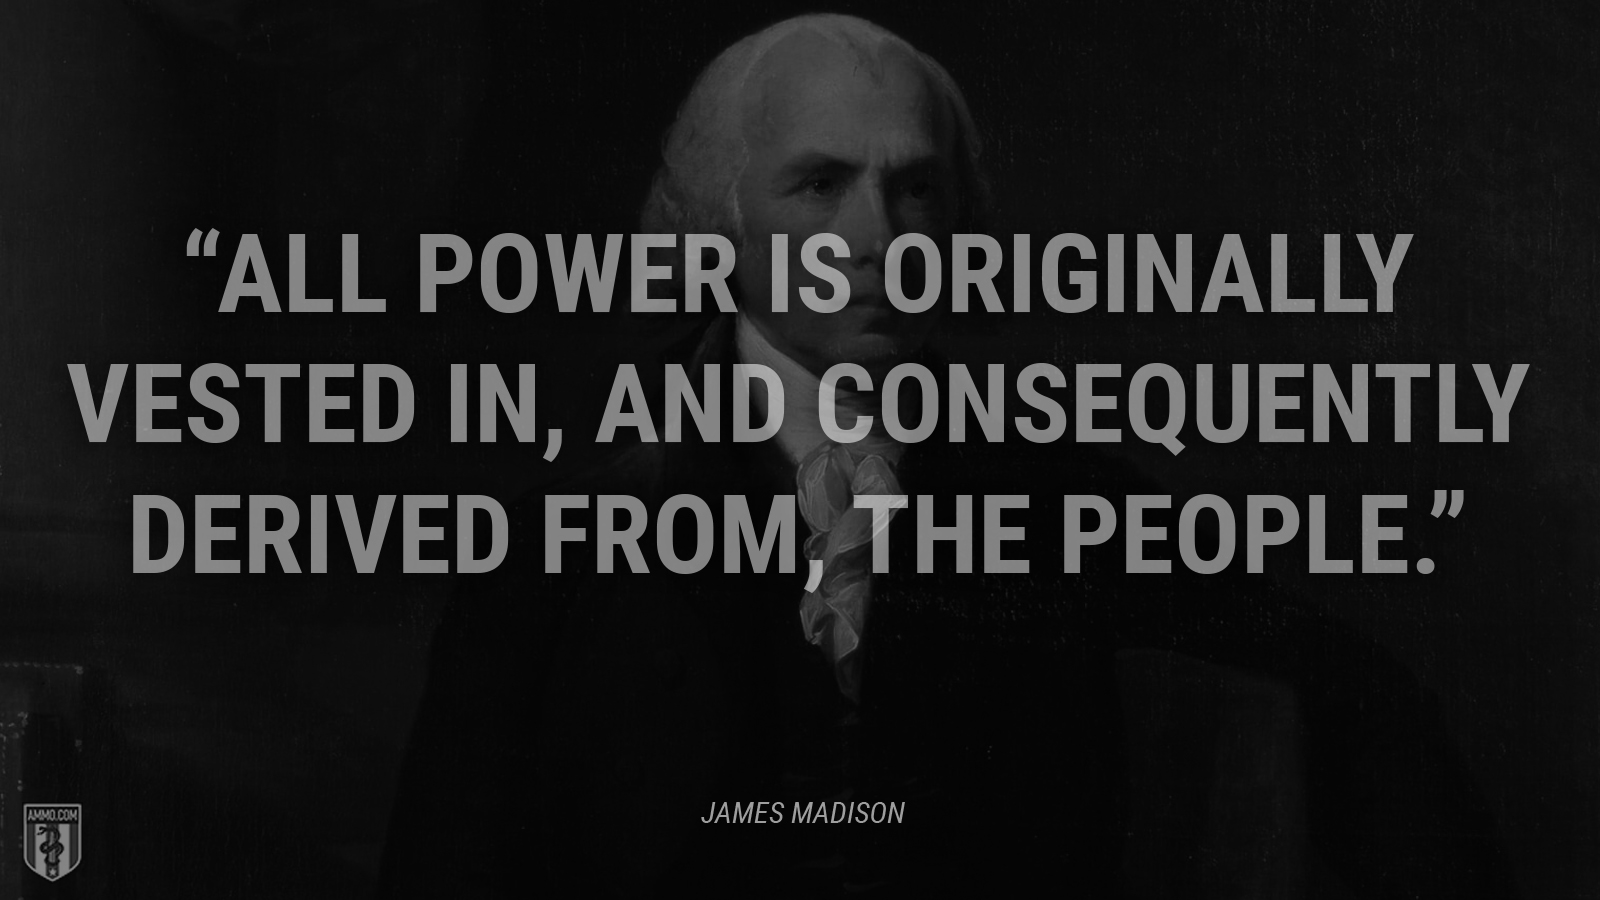 """All power is originally vested in, and consequently derived from, the people."" - James Madison"